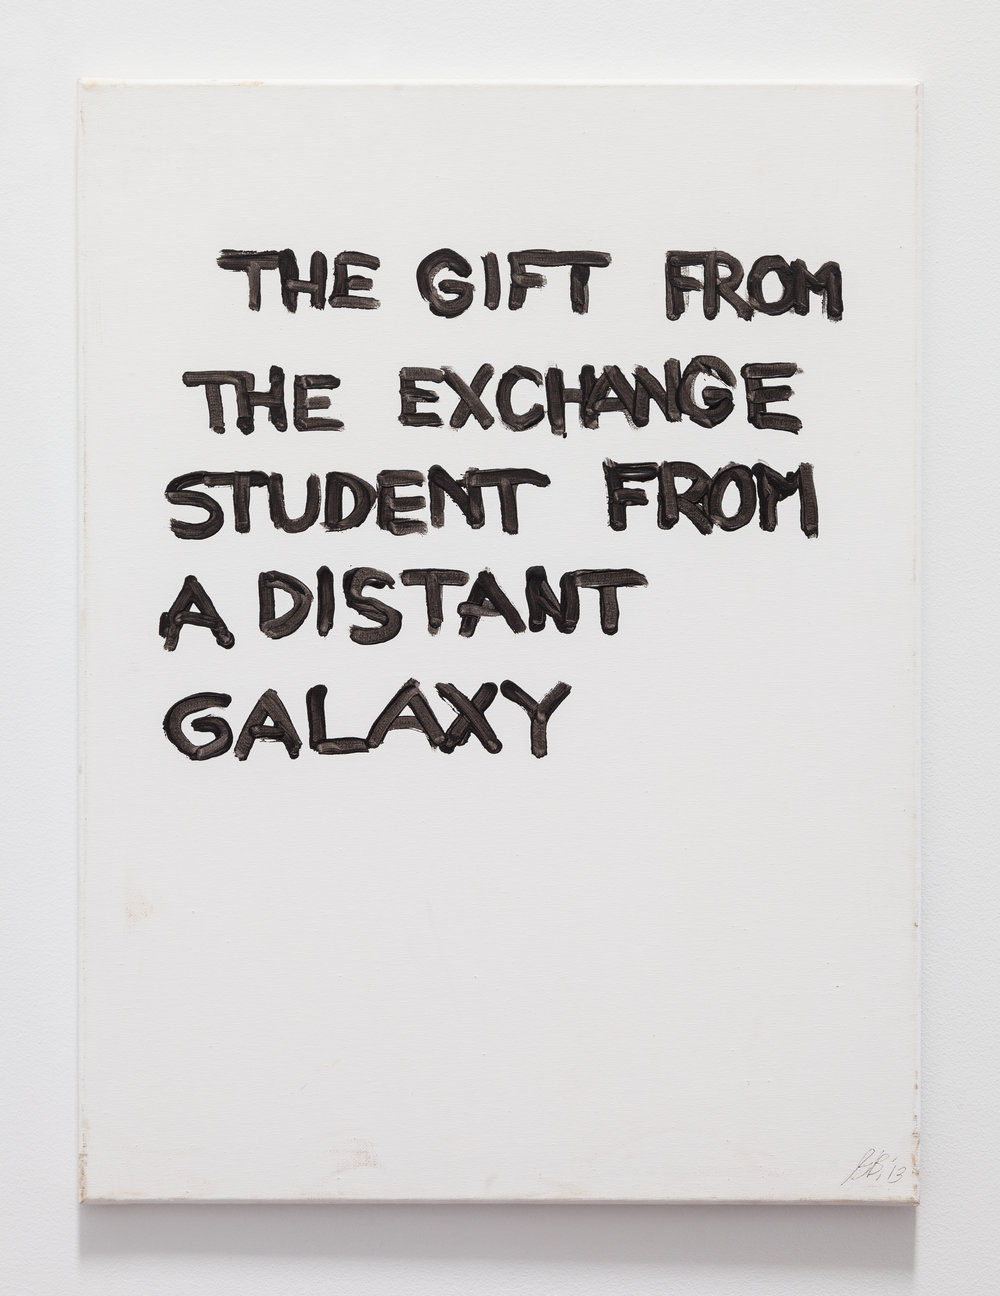 Gene Beery,  The Gift From the Student , 2006, acrylic on canvas, 24 x 18 in